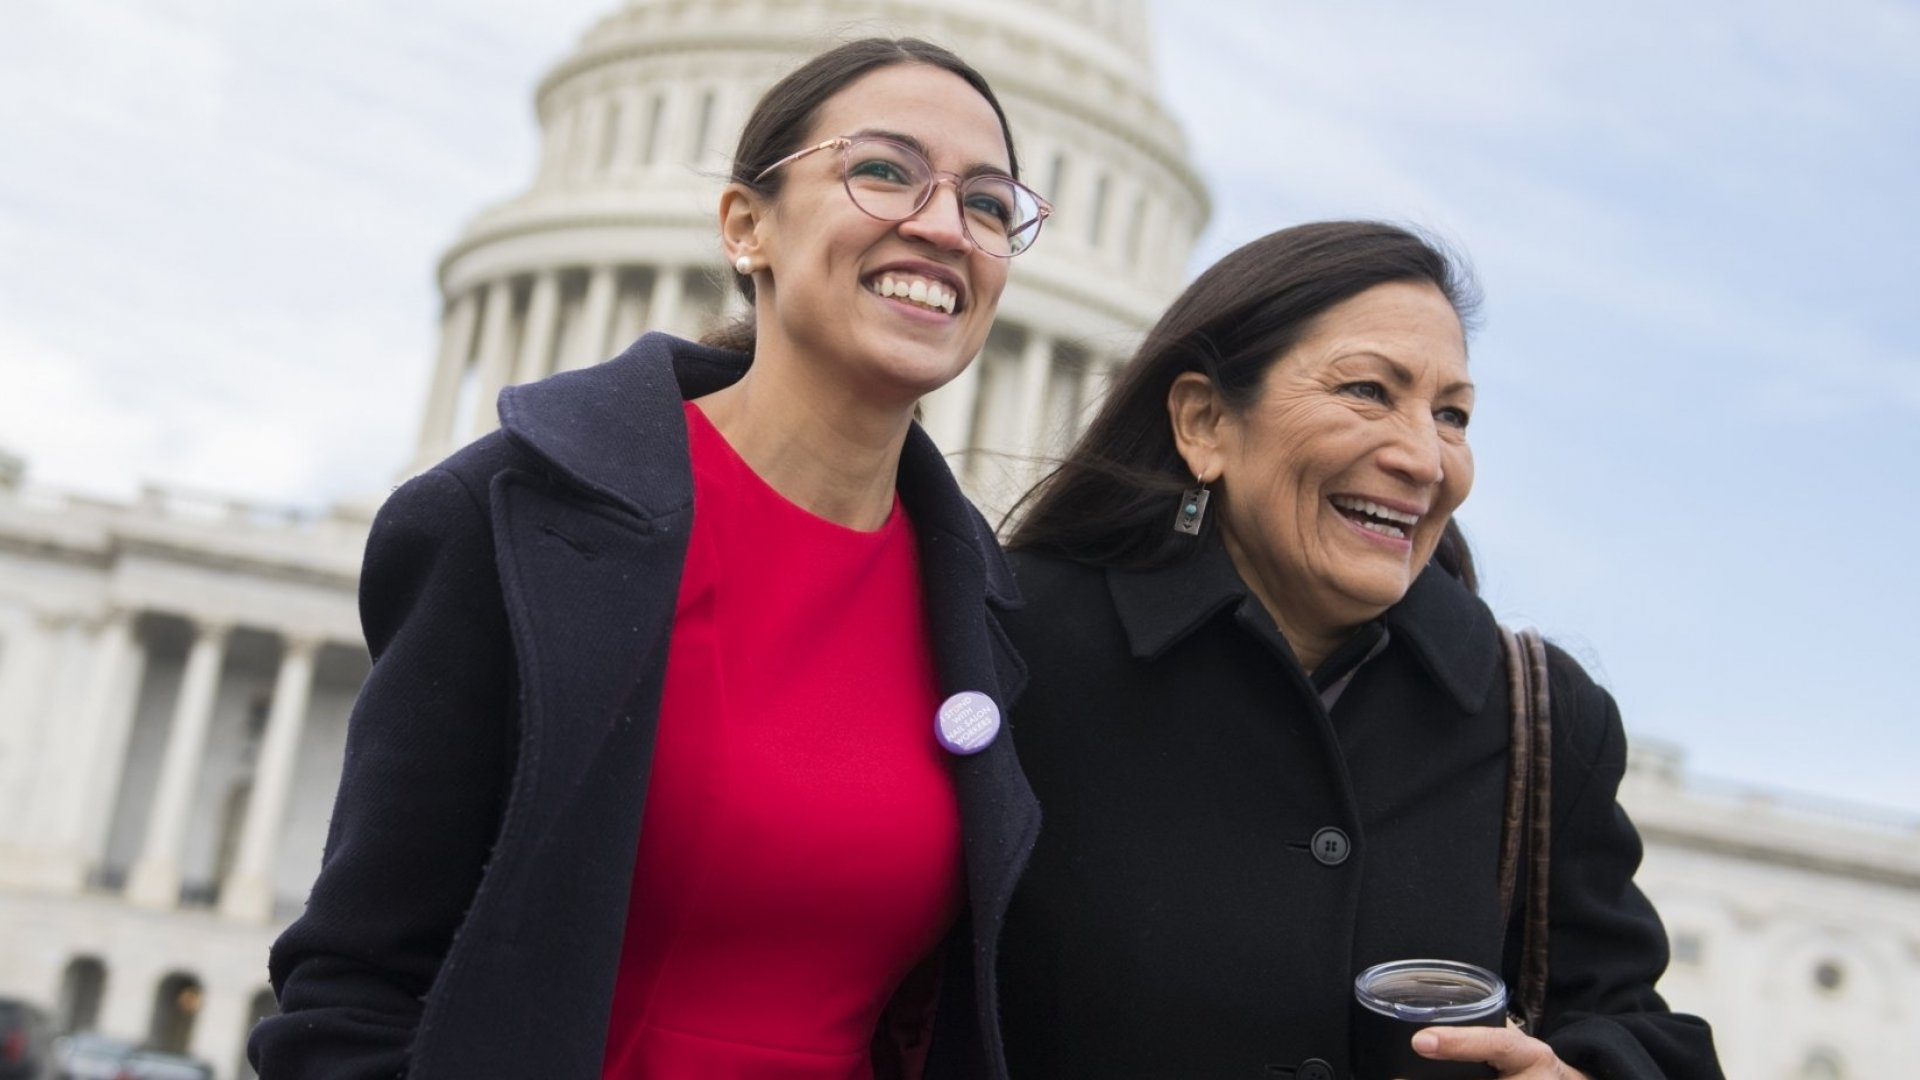 These 3 Leadership Lessons Helped Alexandria Ocasio-Cortez and Other Women Land Spots in Our New Congress